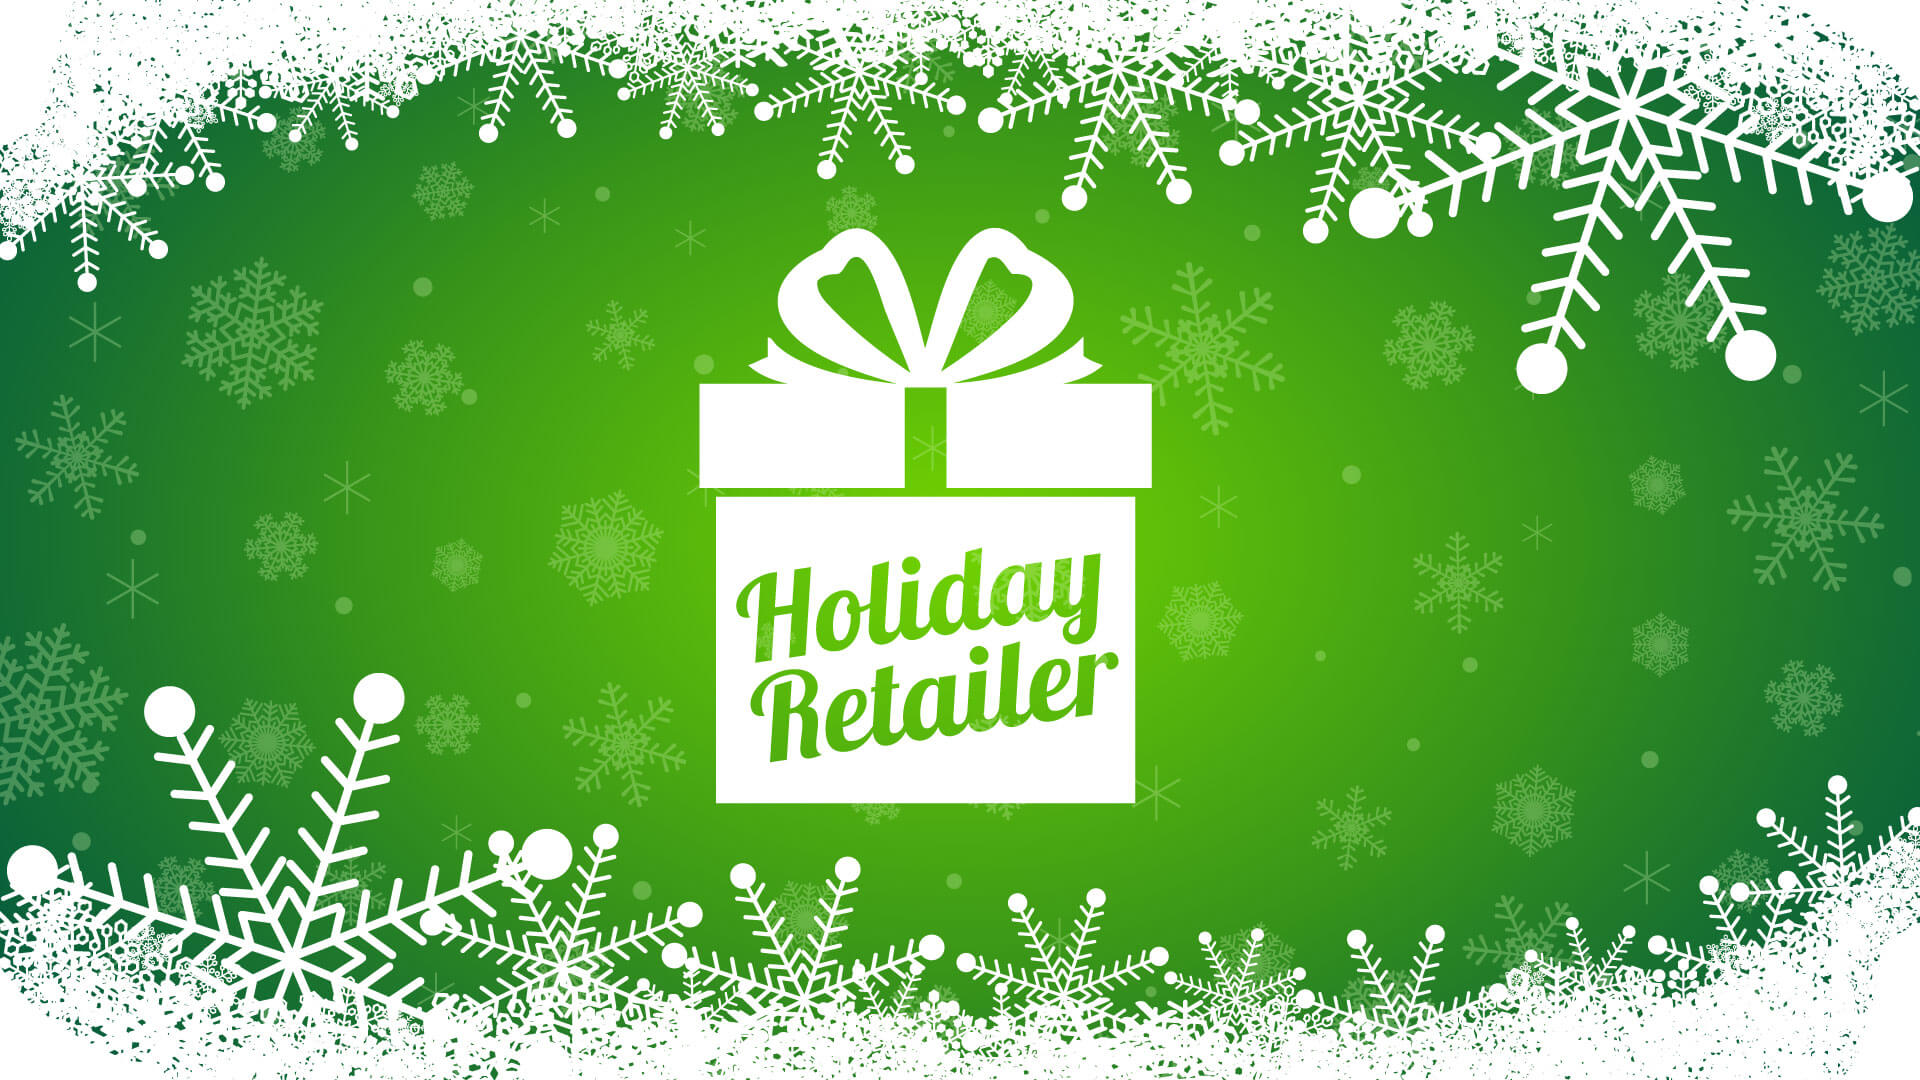 holiday-retailer-2015-hero-1920